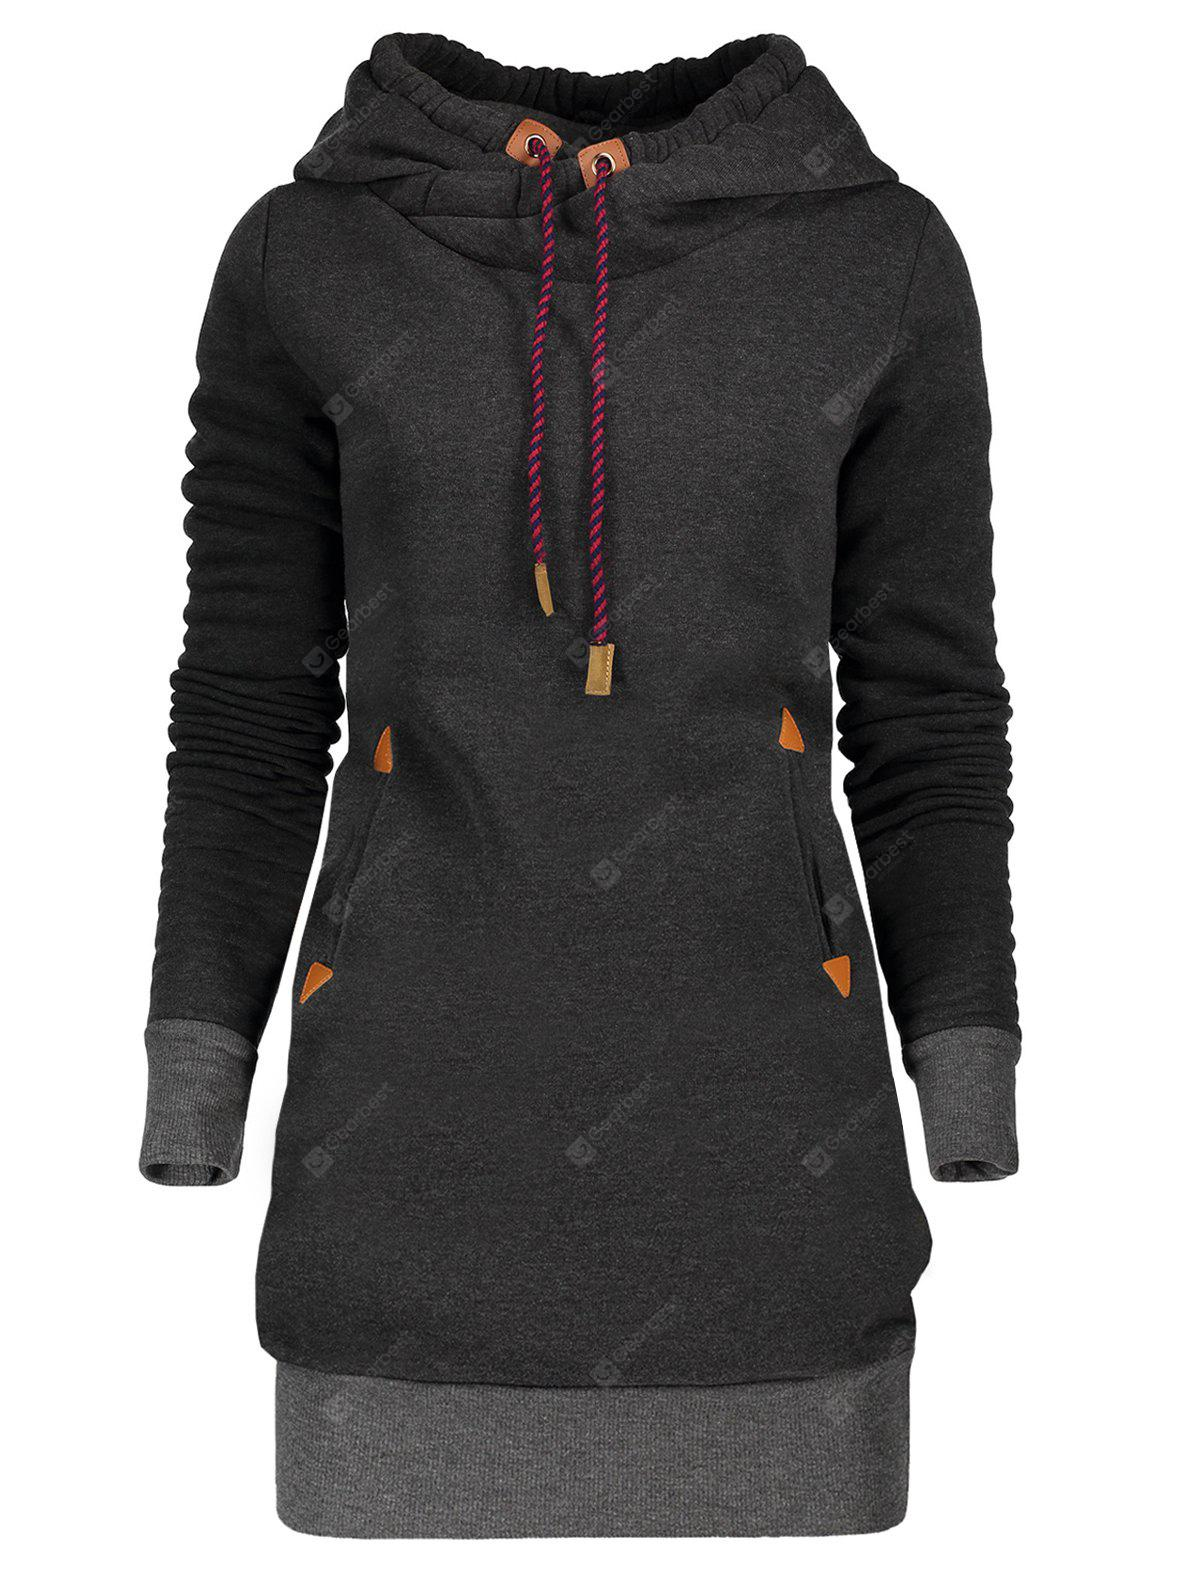 Tunic Hoodie Dress with Pocket and Drawstring